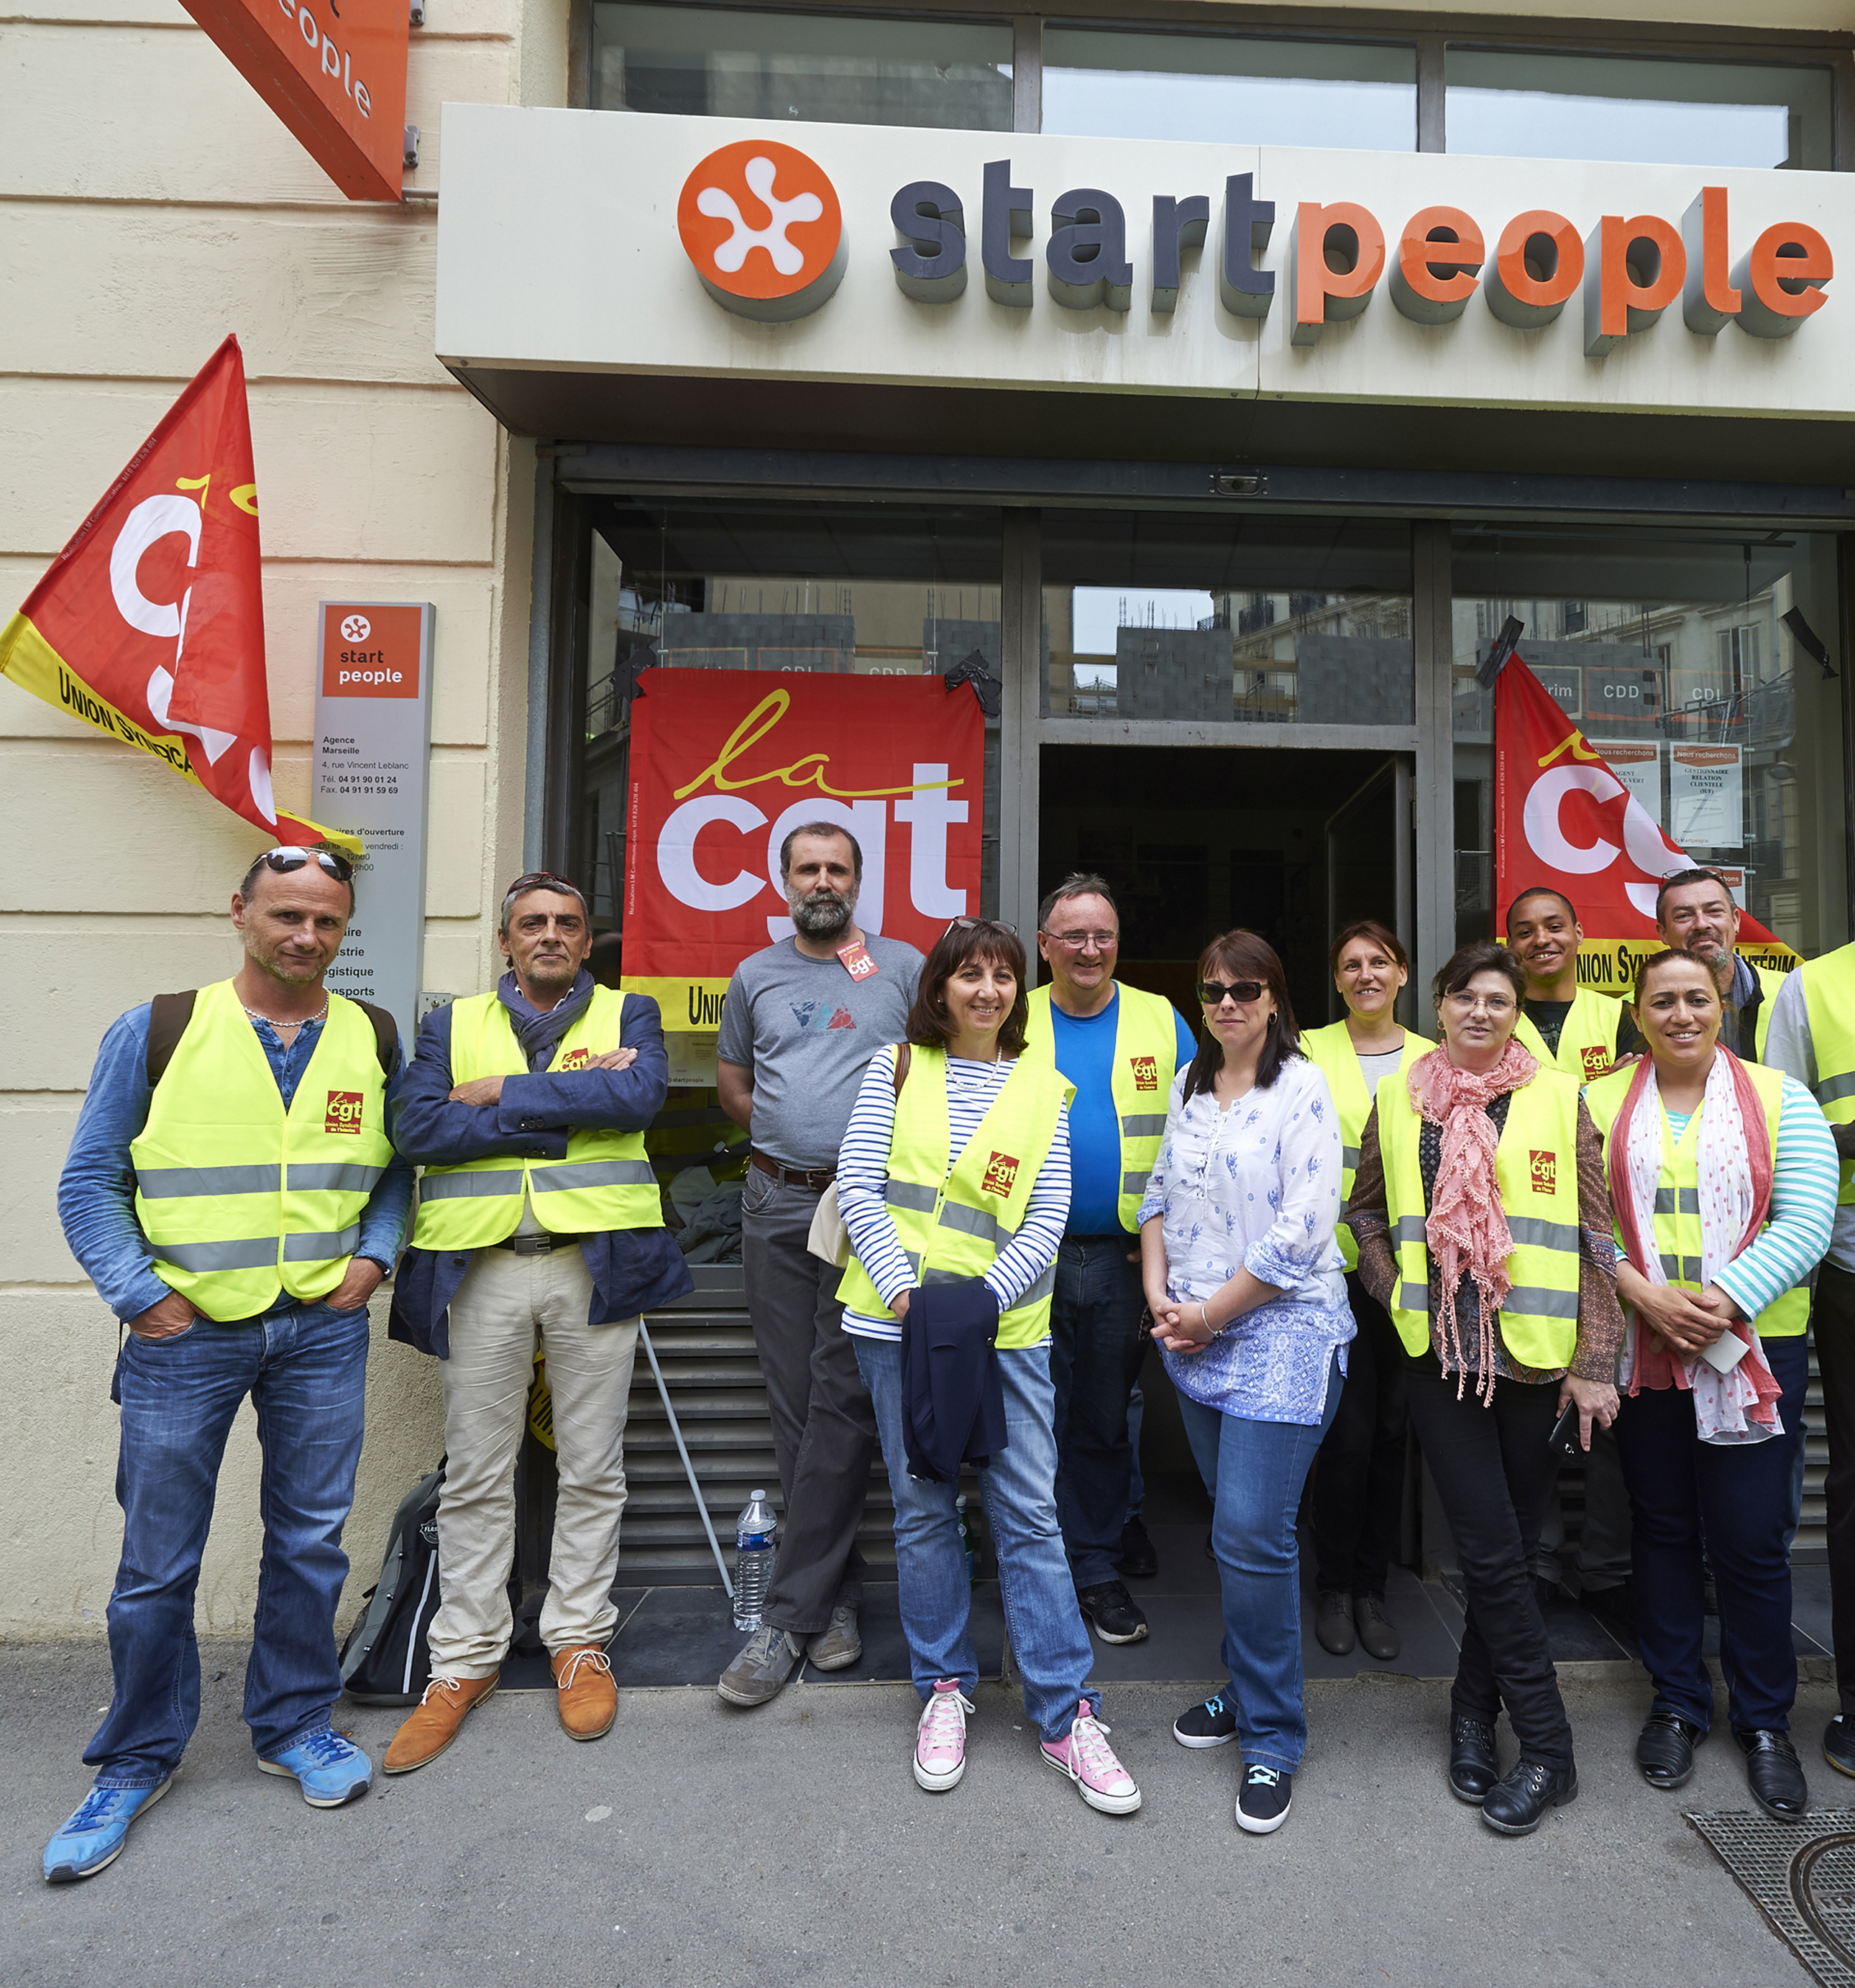 site-cgt-startpeople-1